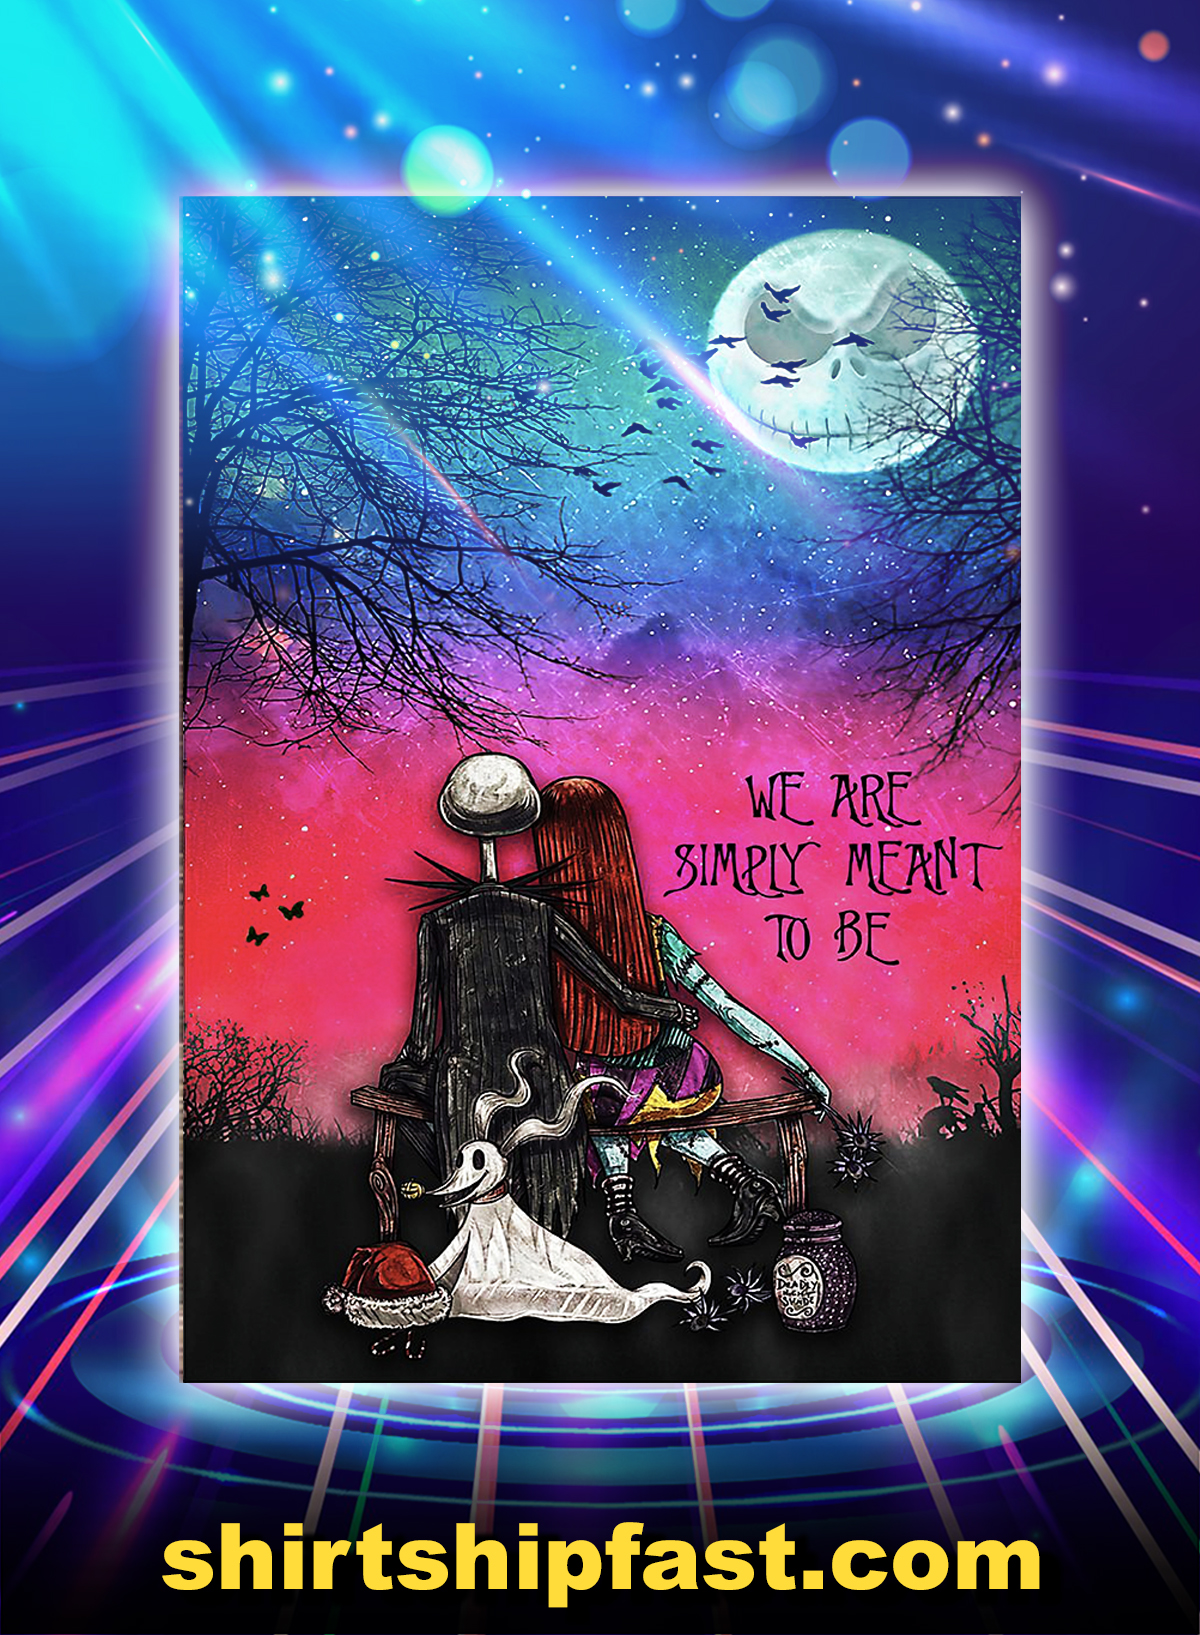 Jack and sally we are simply meant to be poster - A4